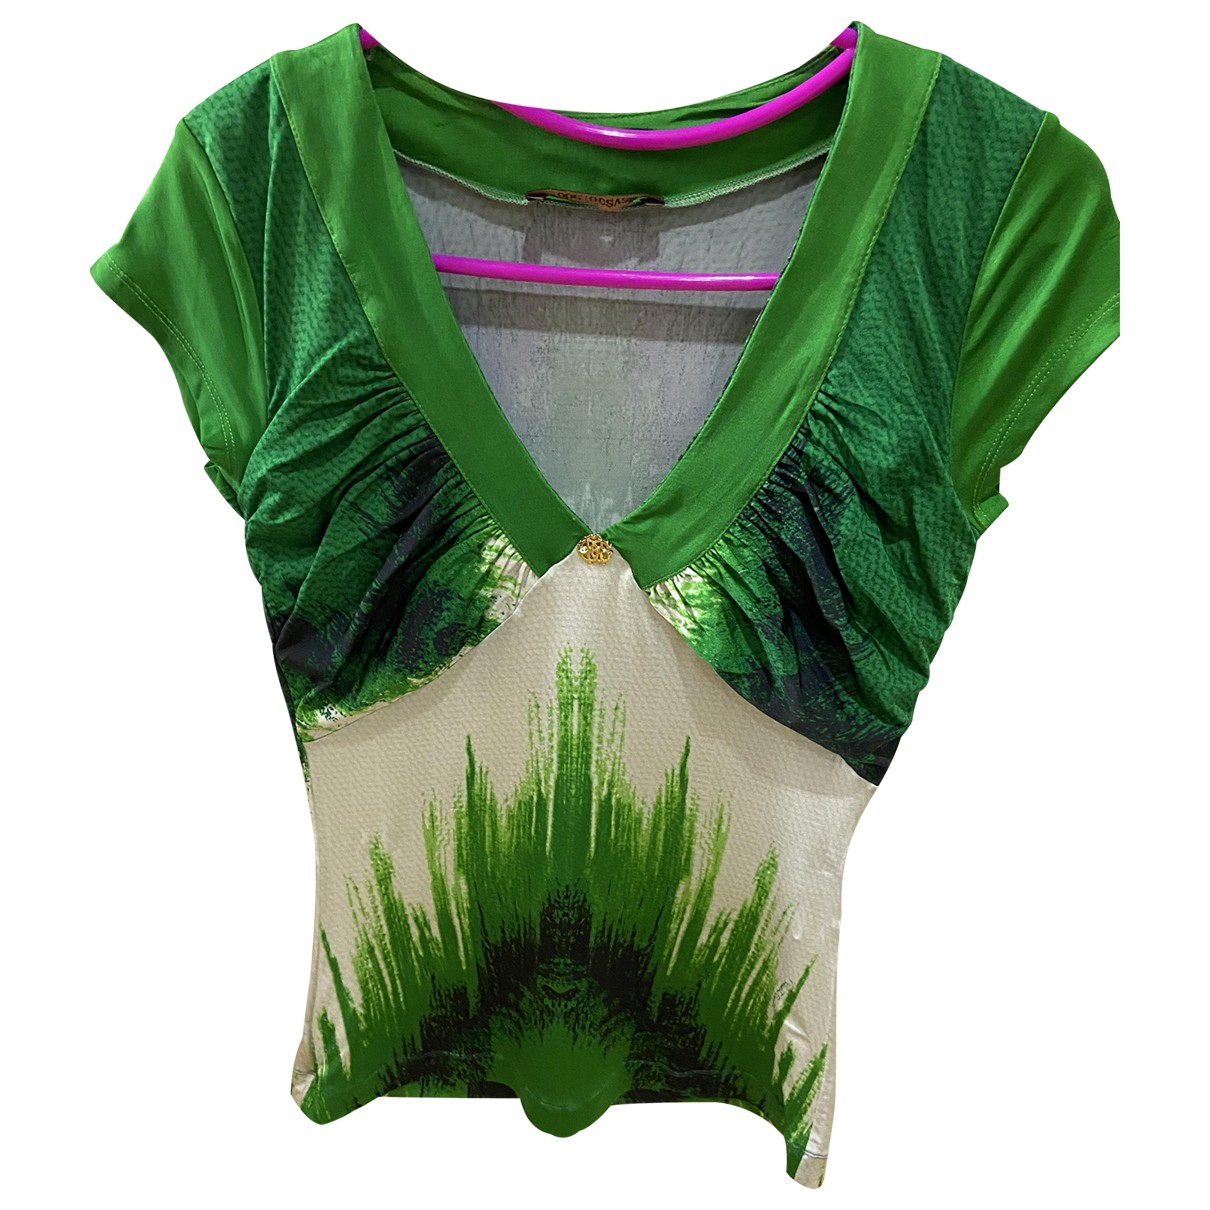 Roberto Cavalli \N Green Silk  top for Women M International